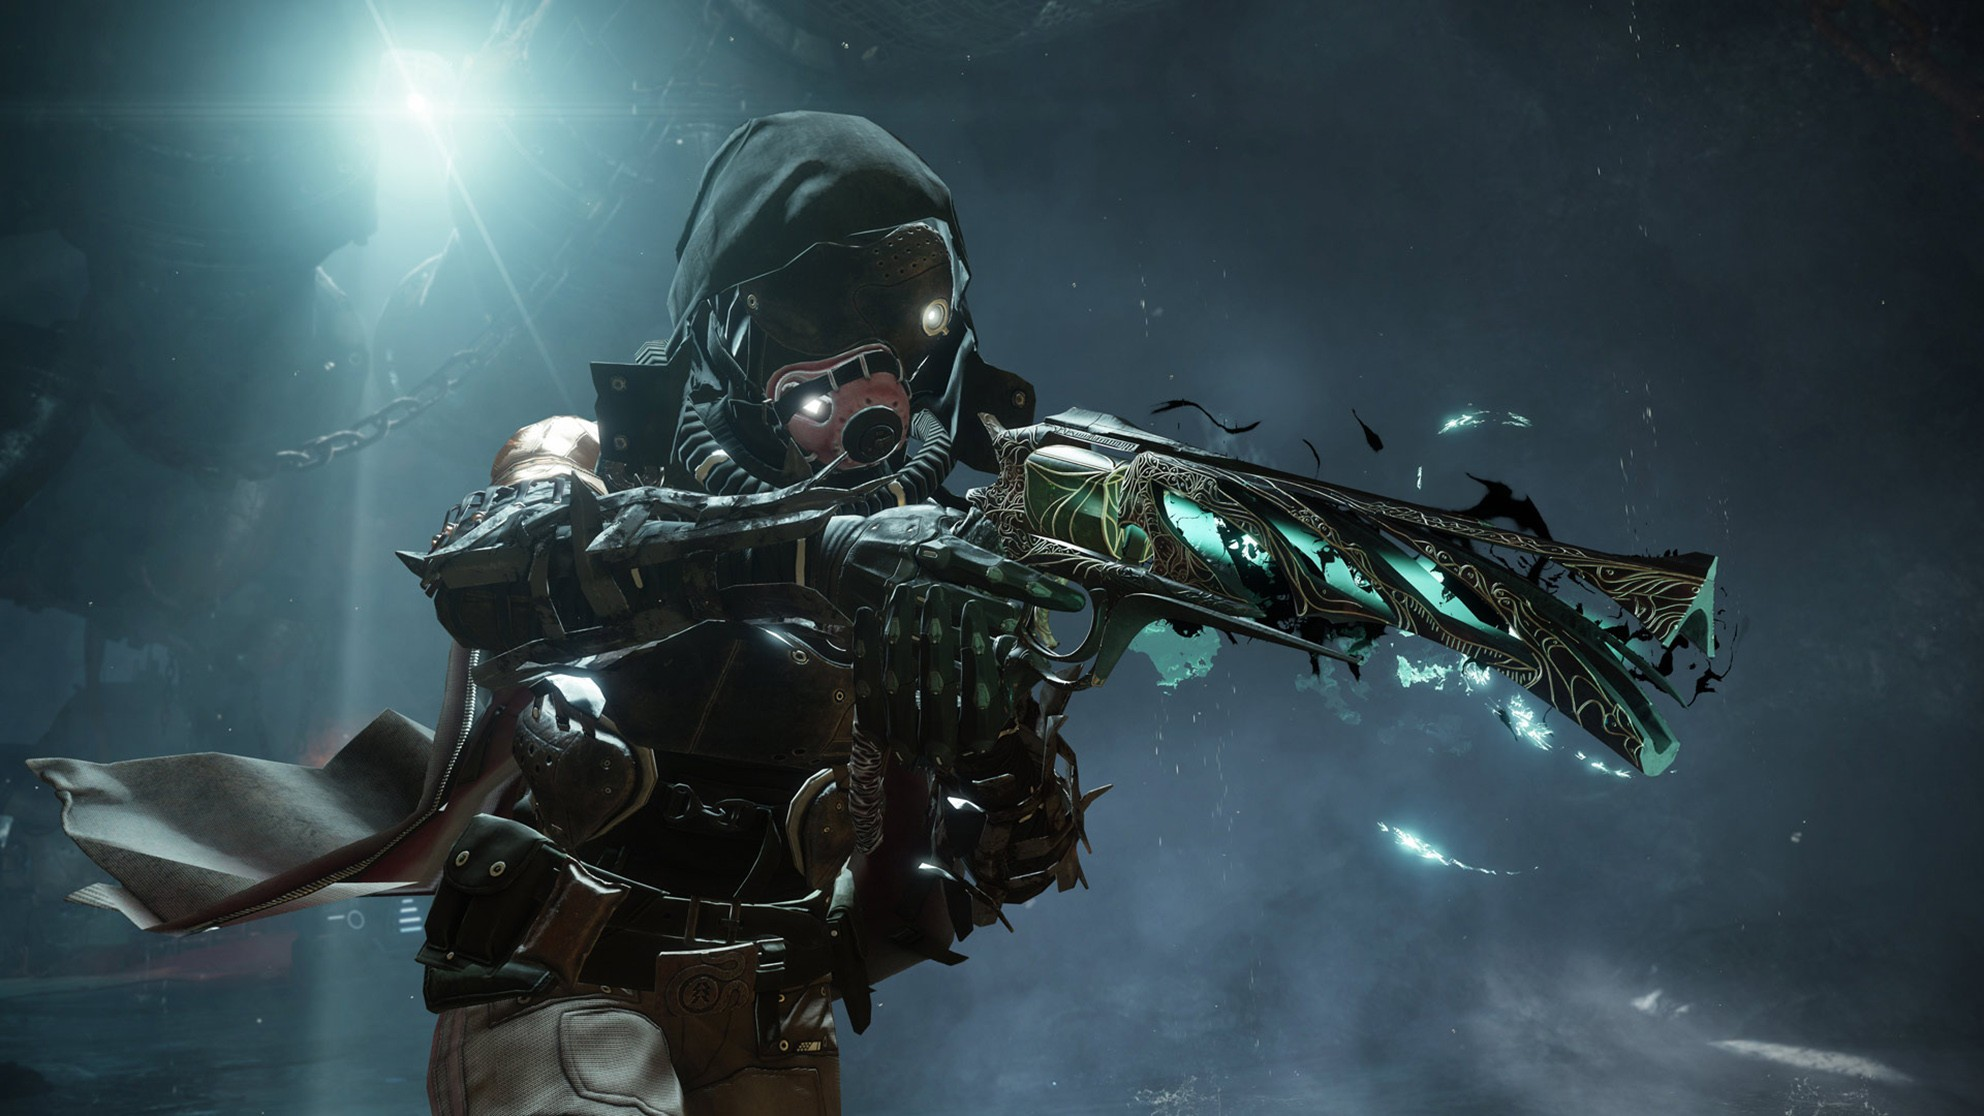 Here is the true reason why Activision Blizzard gave away Destiny 2